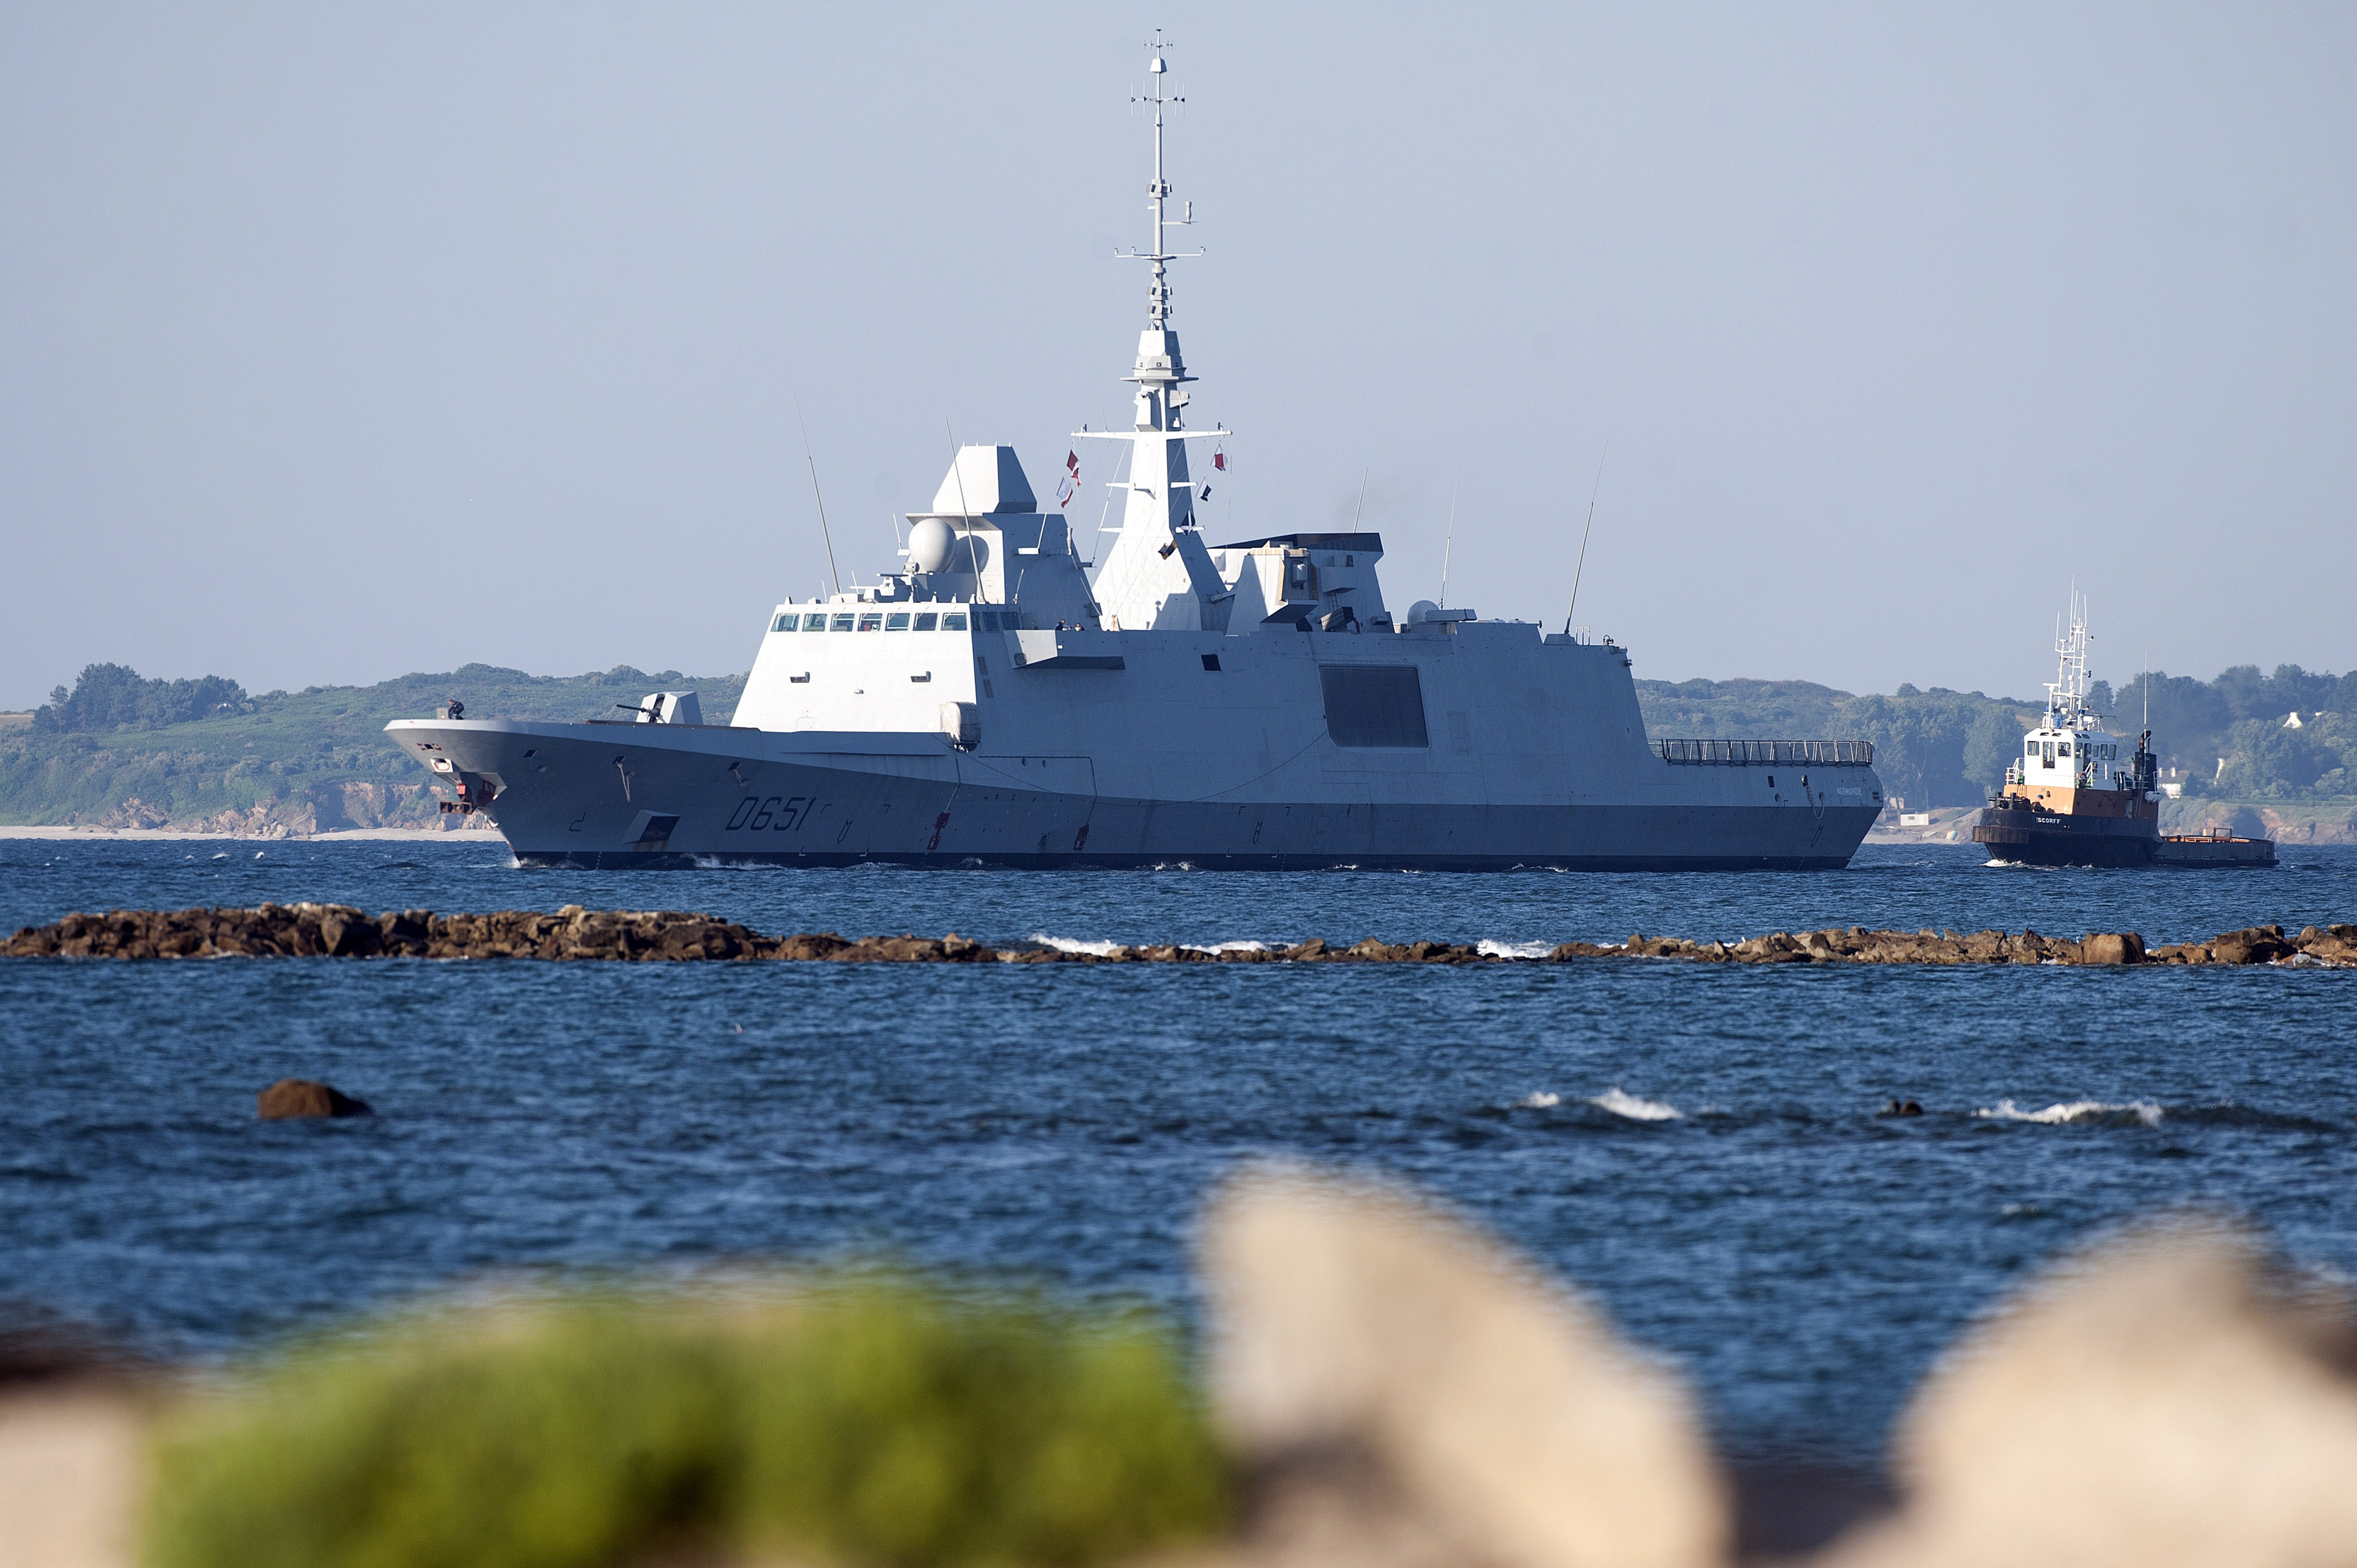 The French Navy's FREMM warship Normandy on July 2, 2014, in Larmor-Plage, near Lorient, Brittany. (Jean-Sebastien Evrard/AFP via Getty Images)